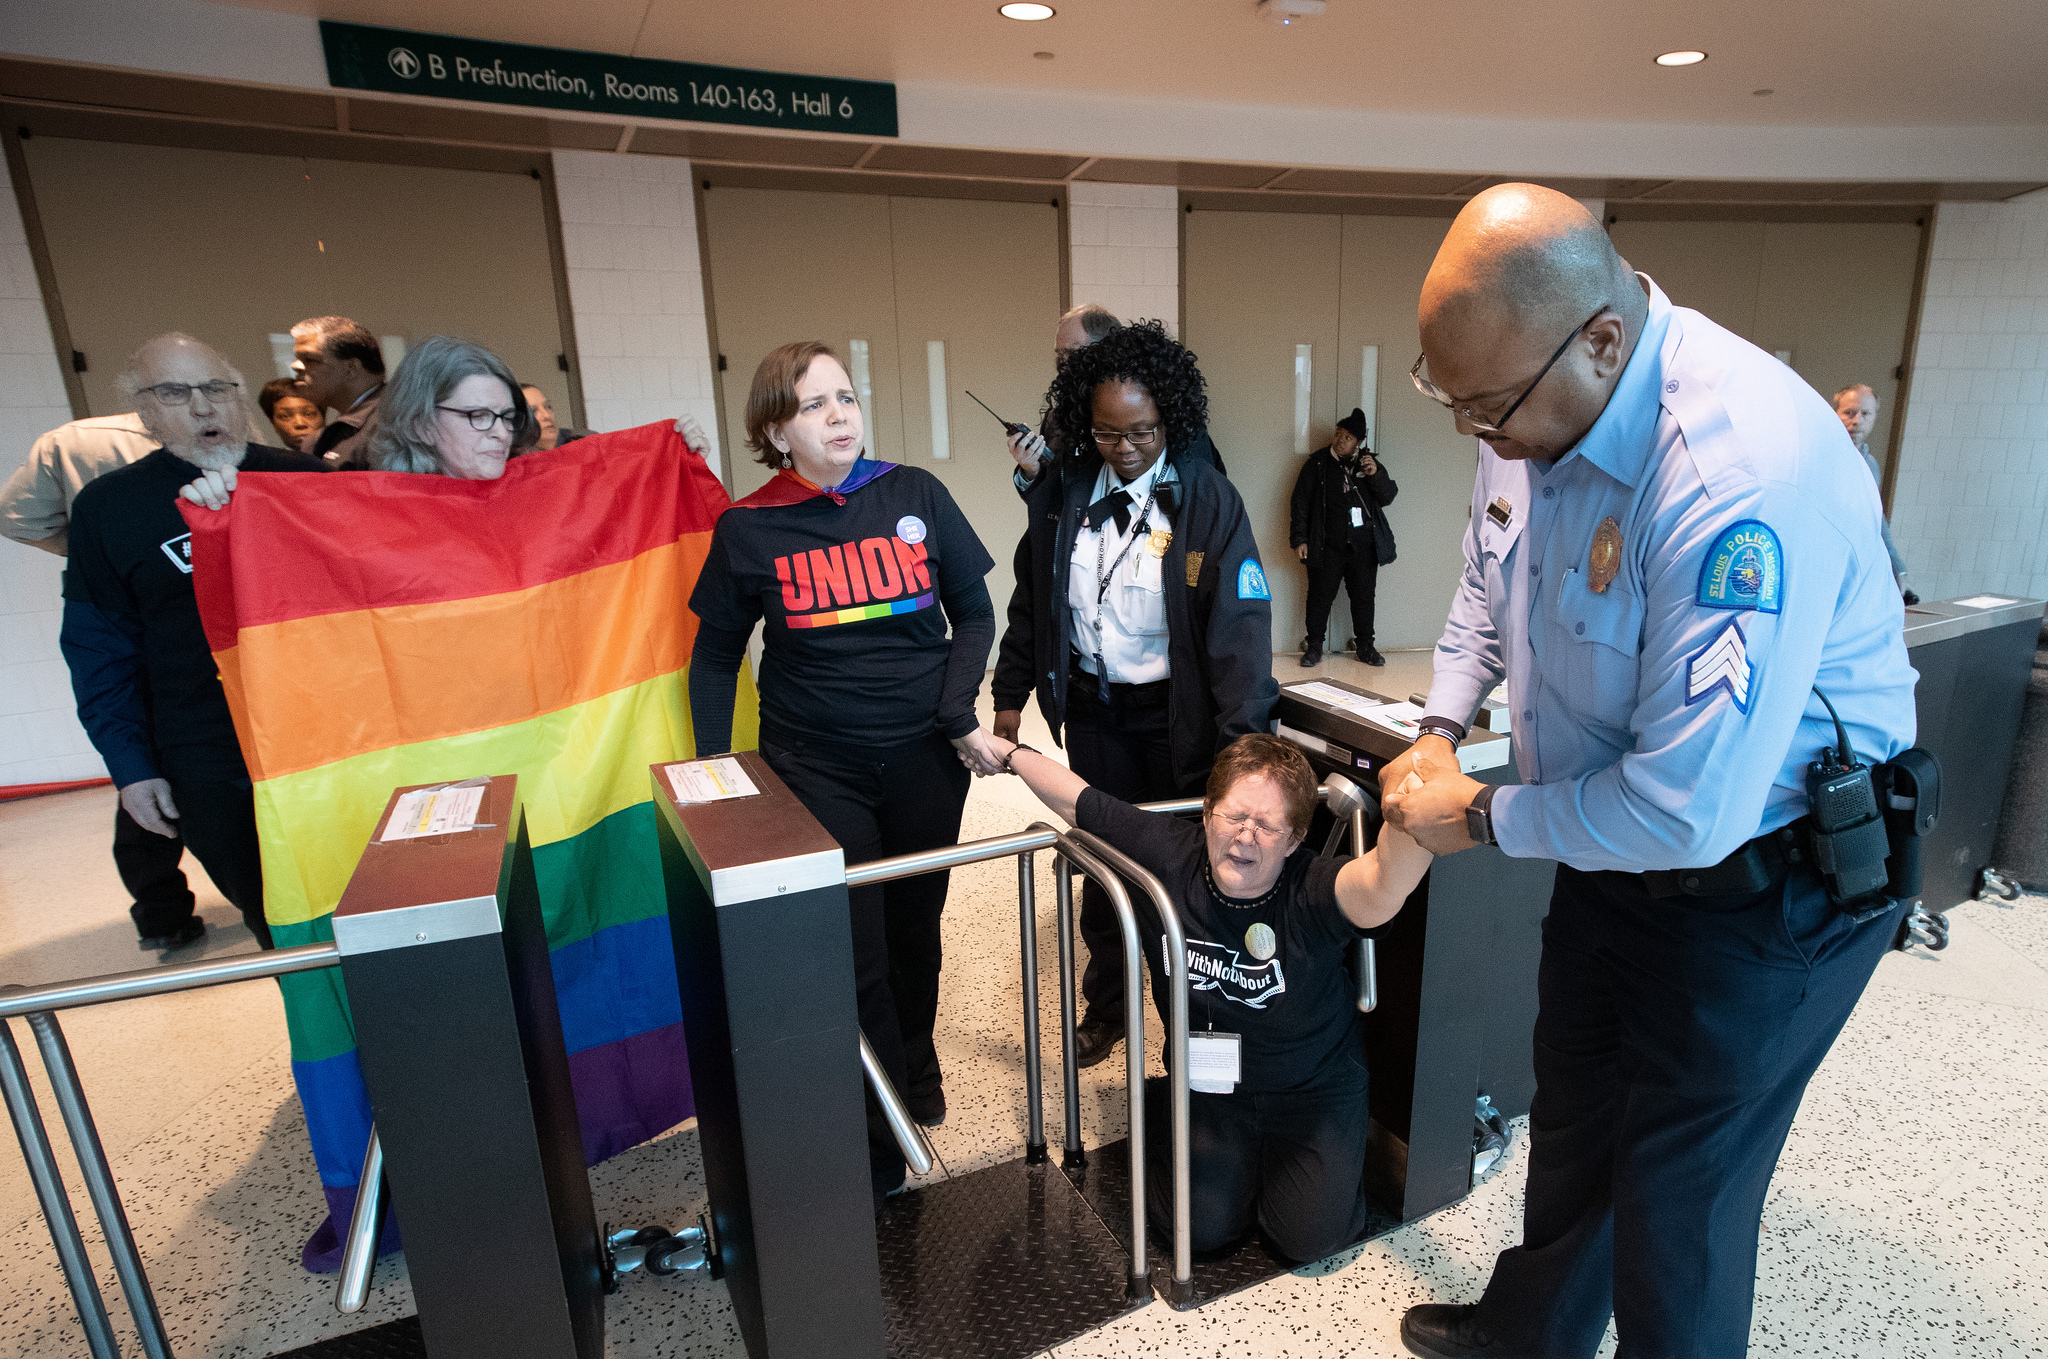 A St. Louis police officer pulls Carol Scott through a turnstile barricade in the Dome at America's Center in St. Louis, site of the 2019 United Methodist General Conference. Scott, a member of the Church of Saint Paul and Saint Andrew in New York, joined other supporters of full inclusion for LGBTQ persons in the life of The United Methodist Church in a protest outside the legislative assembly. Photo by Mike DuBose, UMNS.